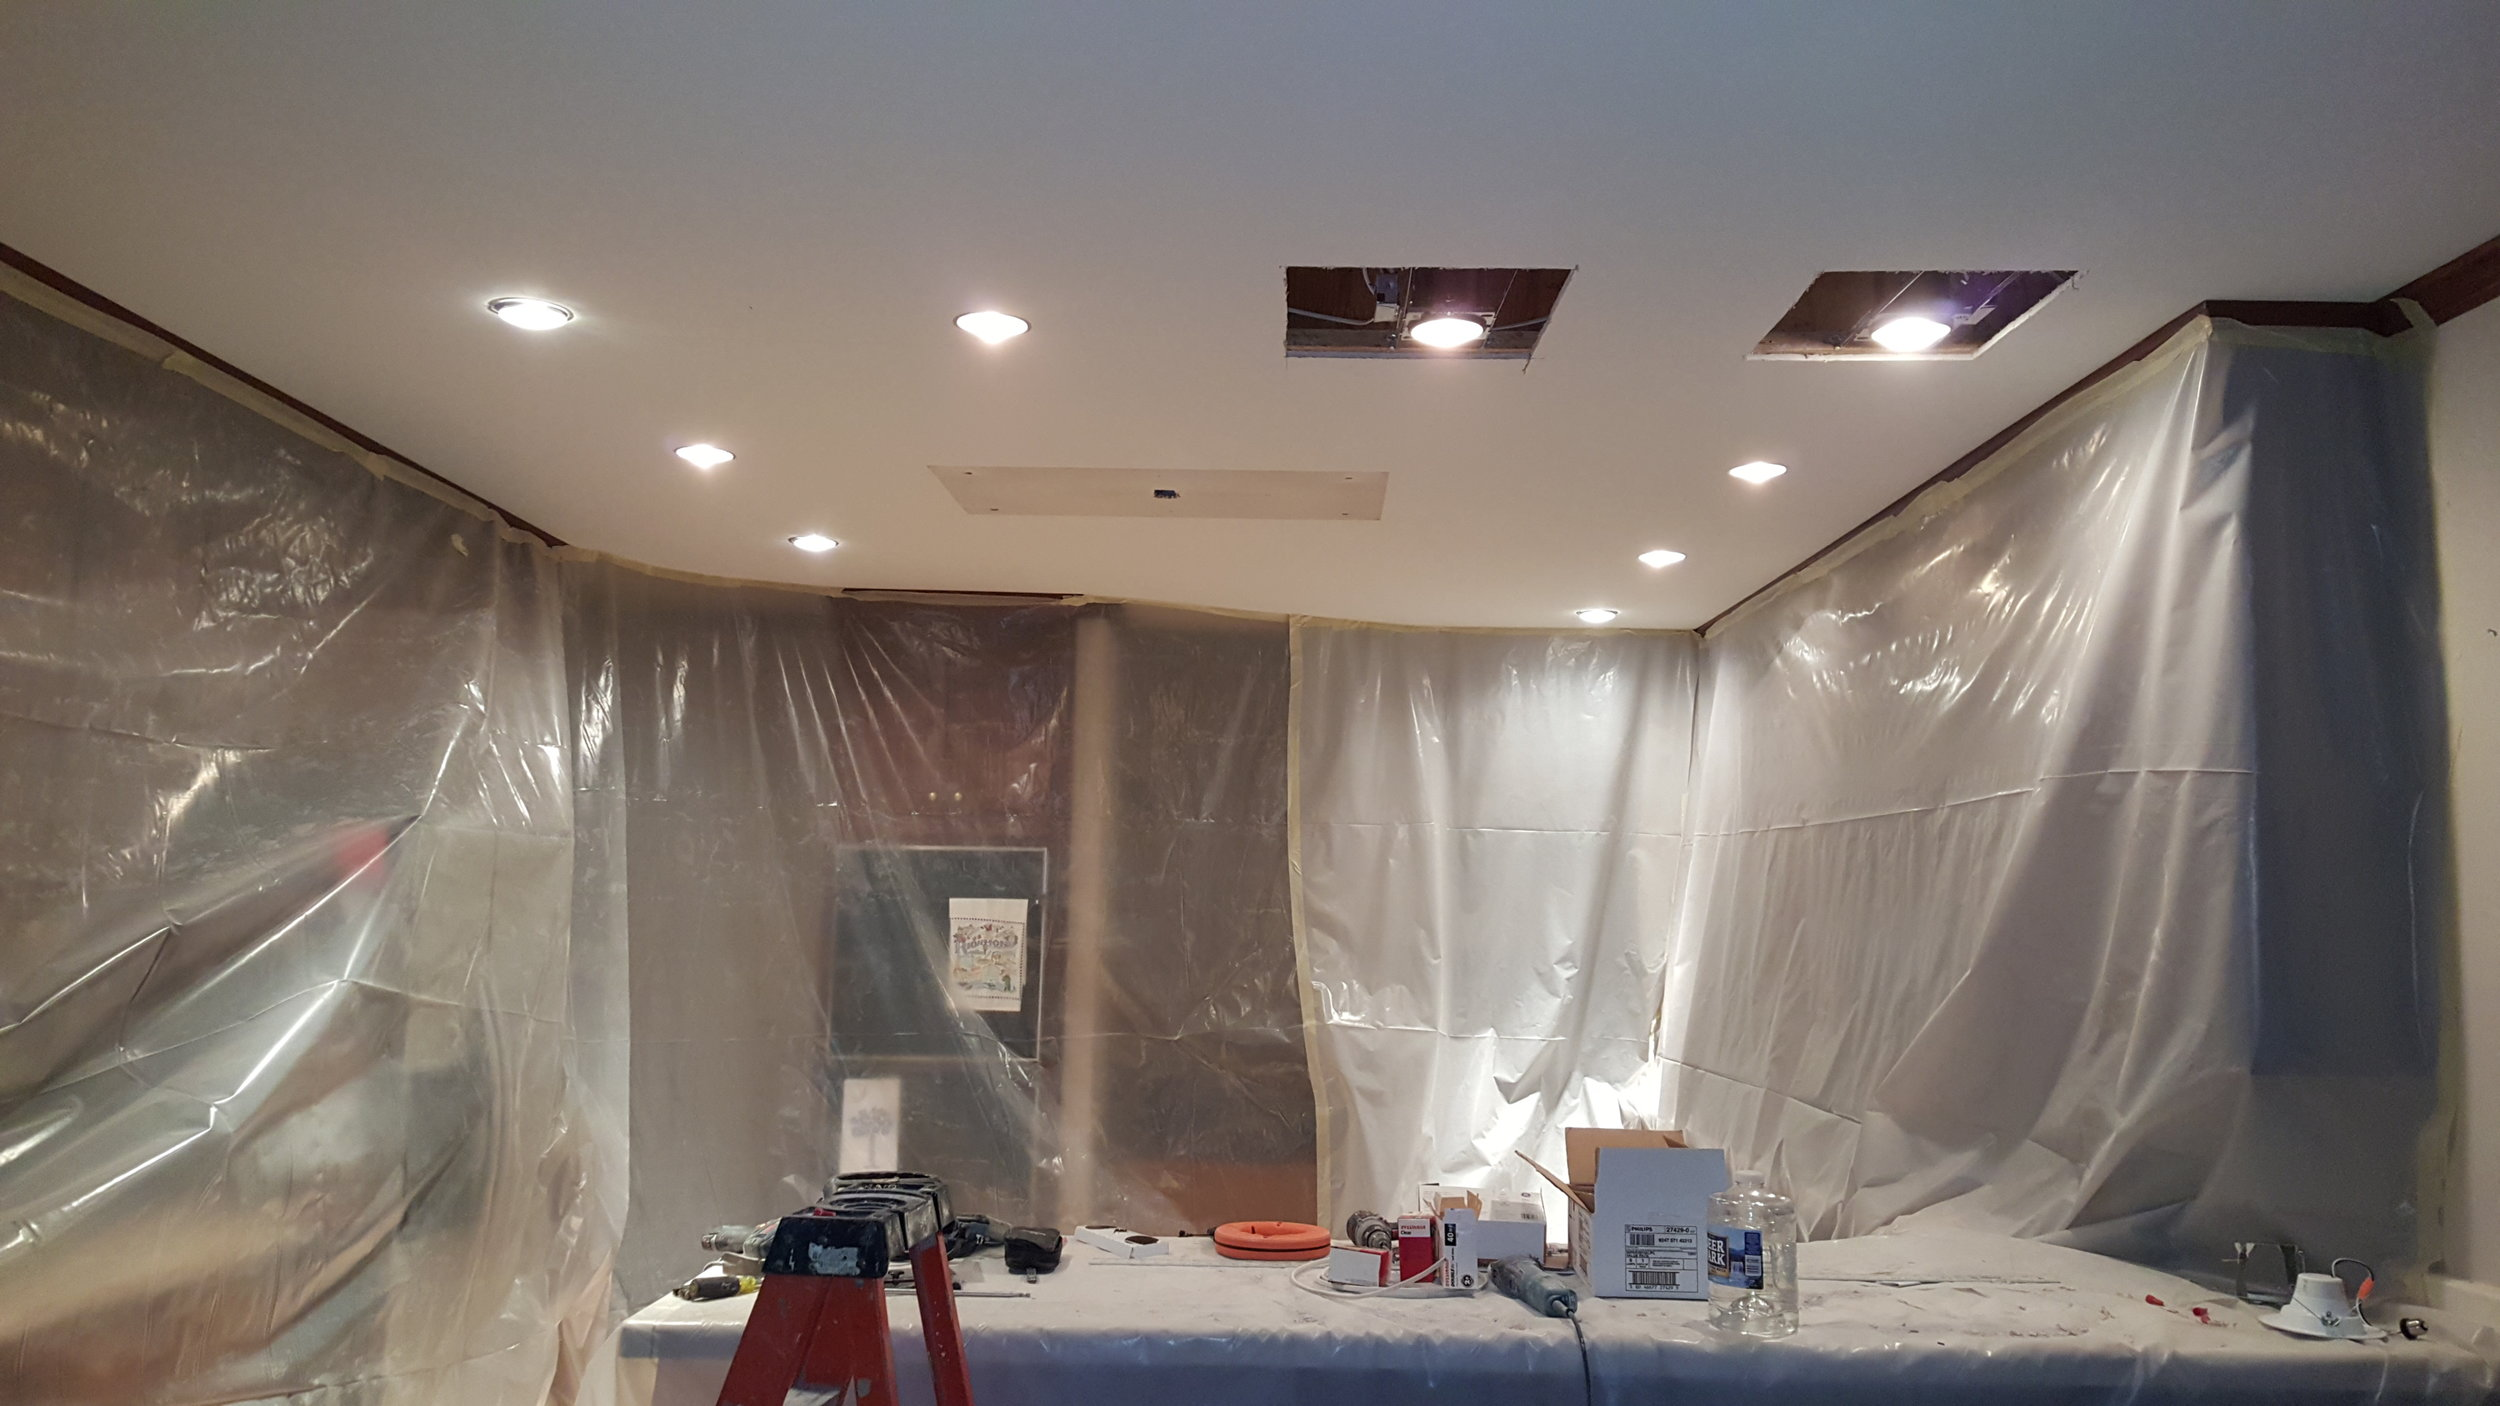 Residential Harvey Electrical Rewiring A Room From Adding Recessed Lighting To Completely House Can Meet Your